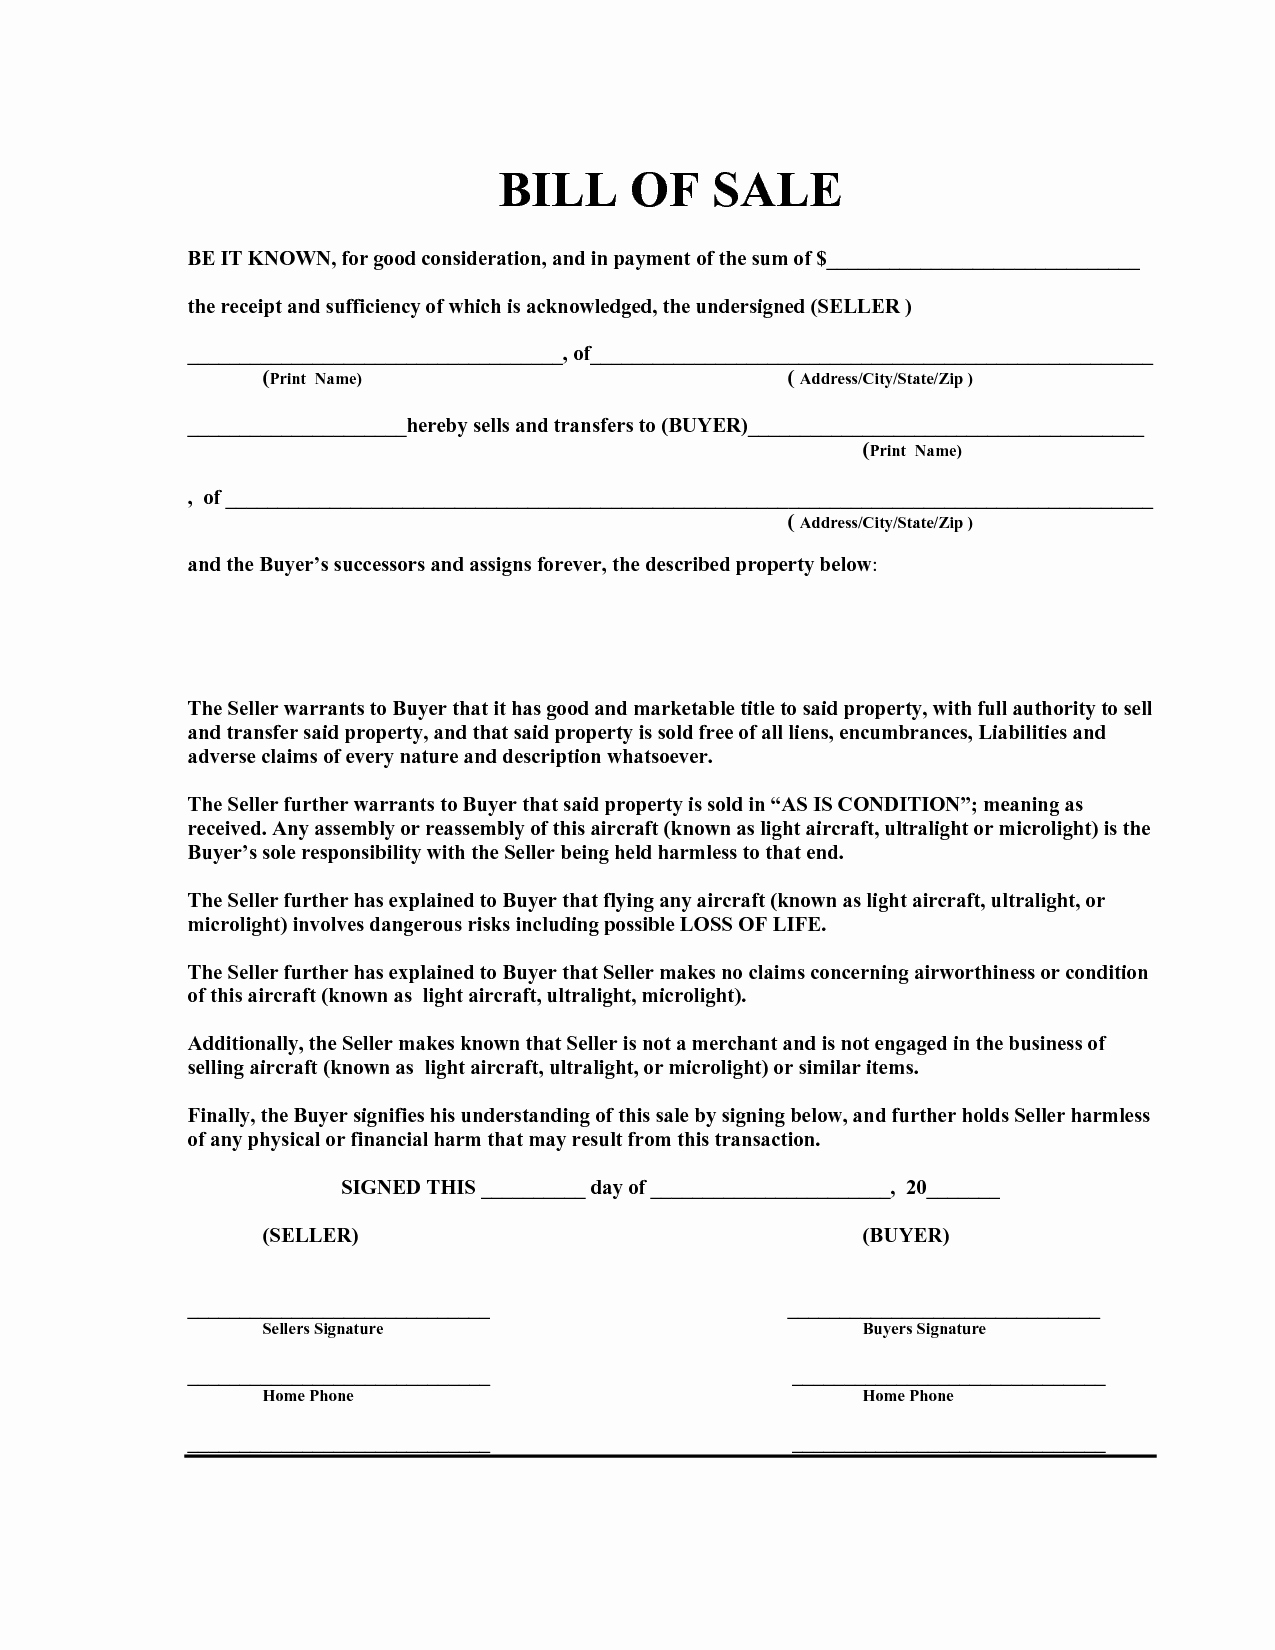 Bill Of Sale Printable Free Inspirational Free Bill Of Sale Template Pdf by Marymenti as is Bill